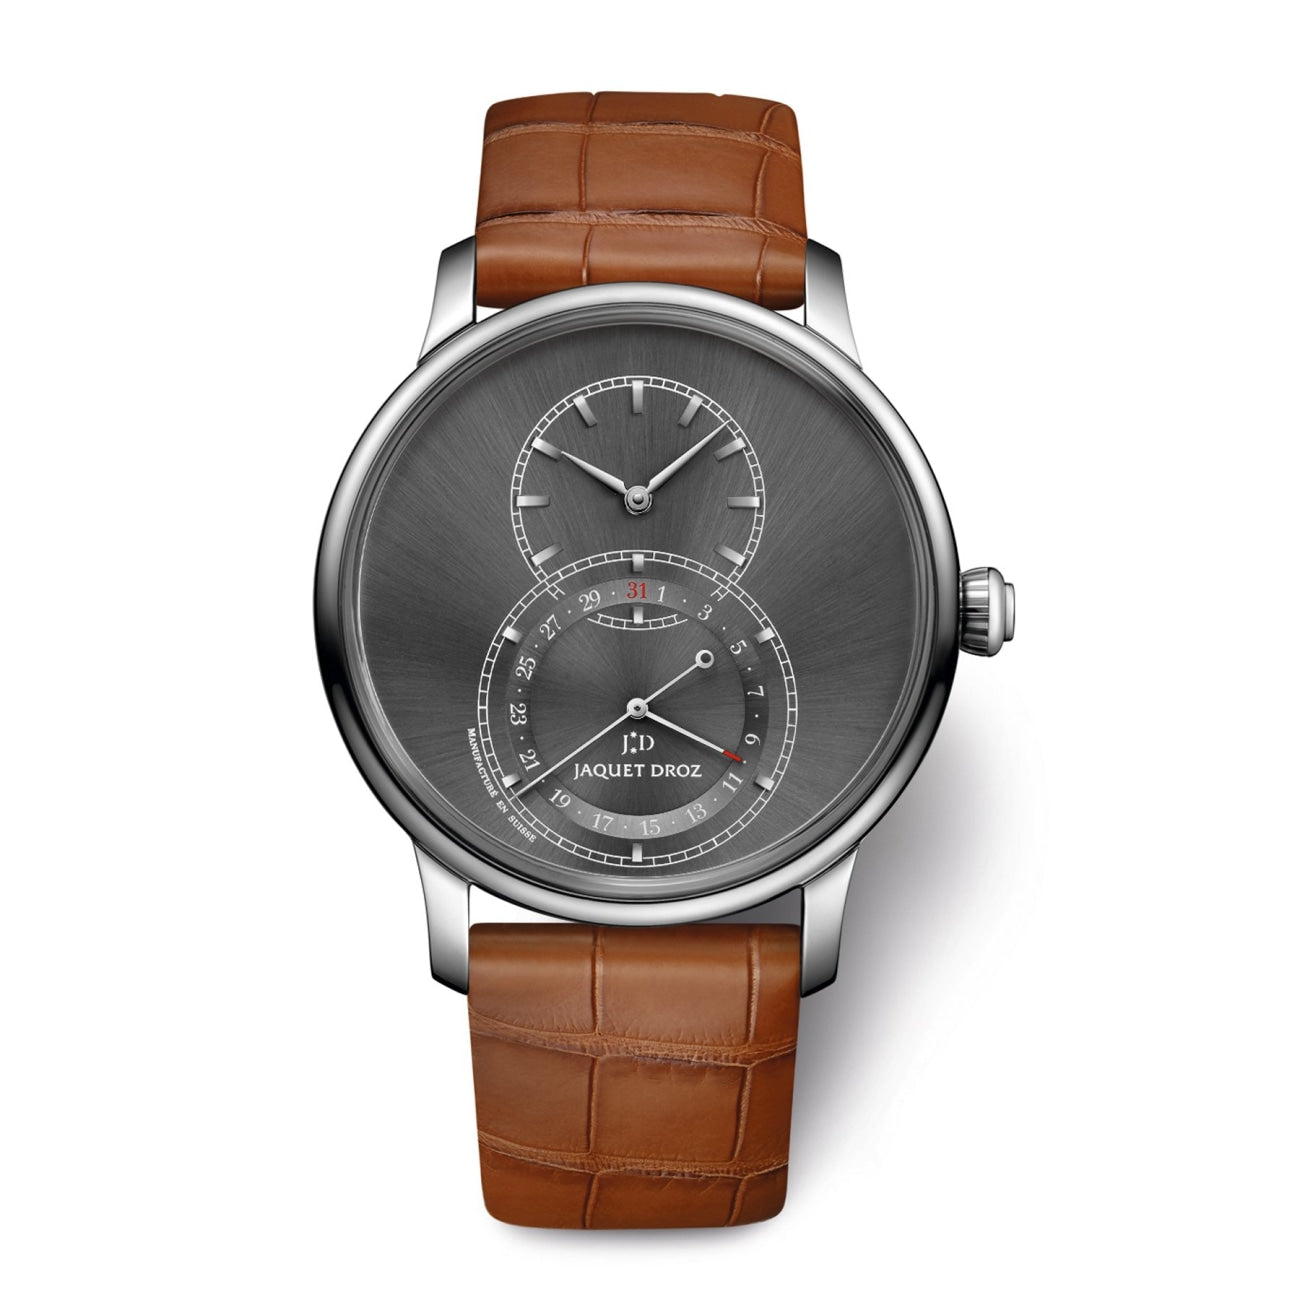 Jaquet Droz Watches - GRANDE SECONDE QUANTIME SATIN-BRUSHED ANTHRACITE | Manfredi Jewels